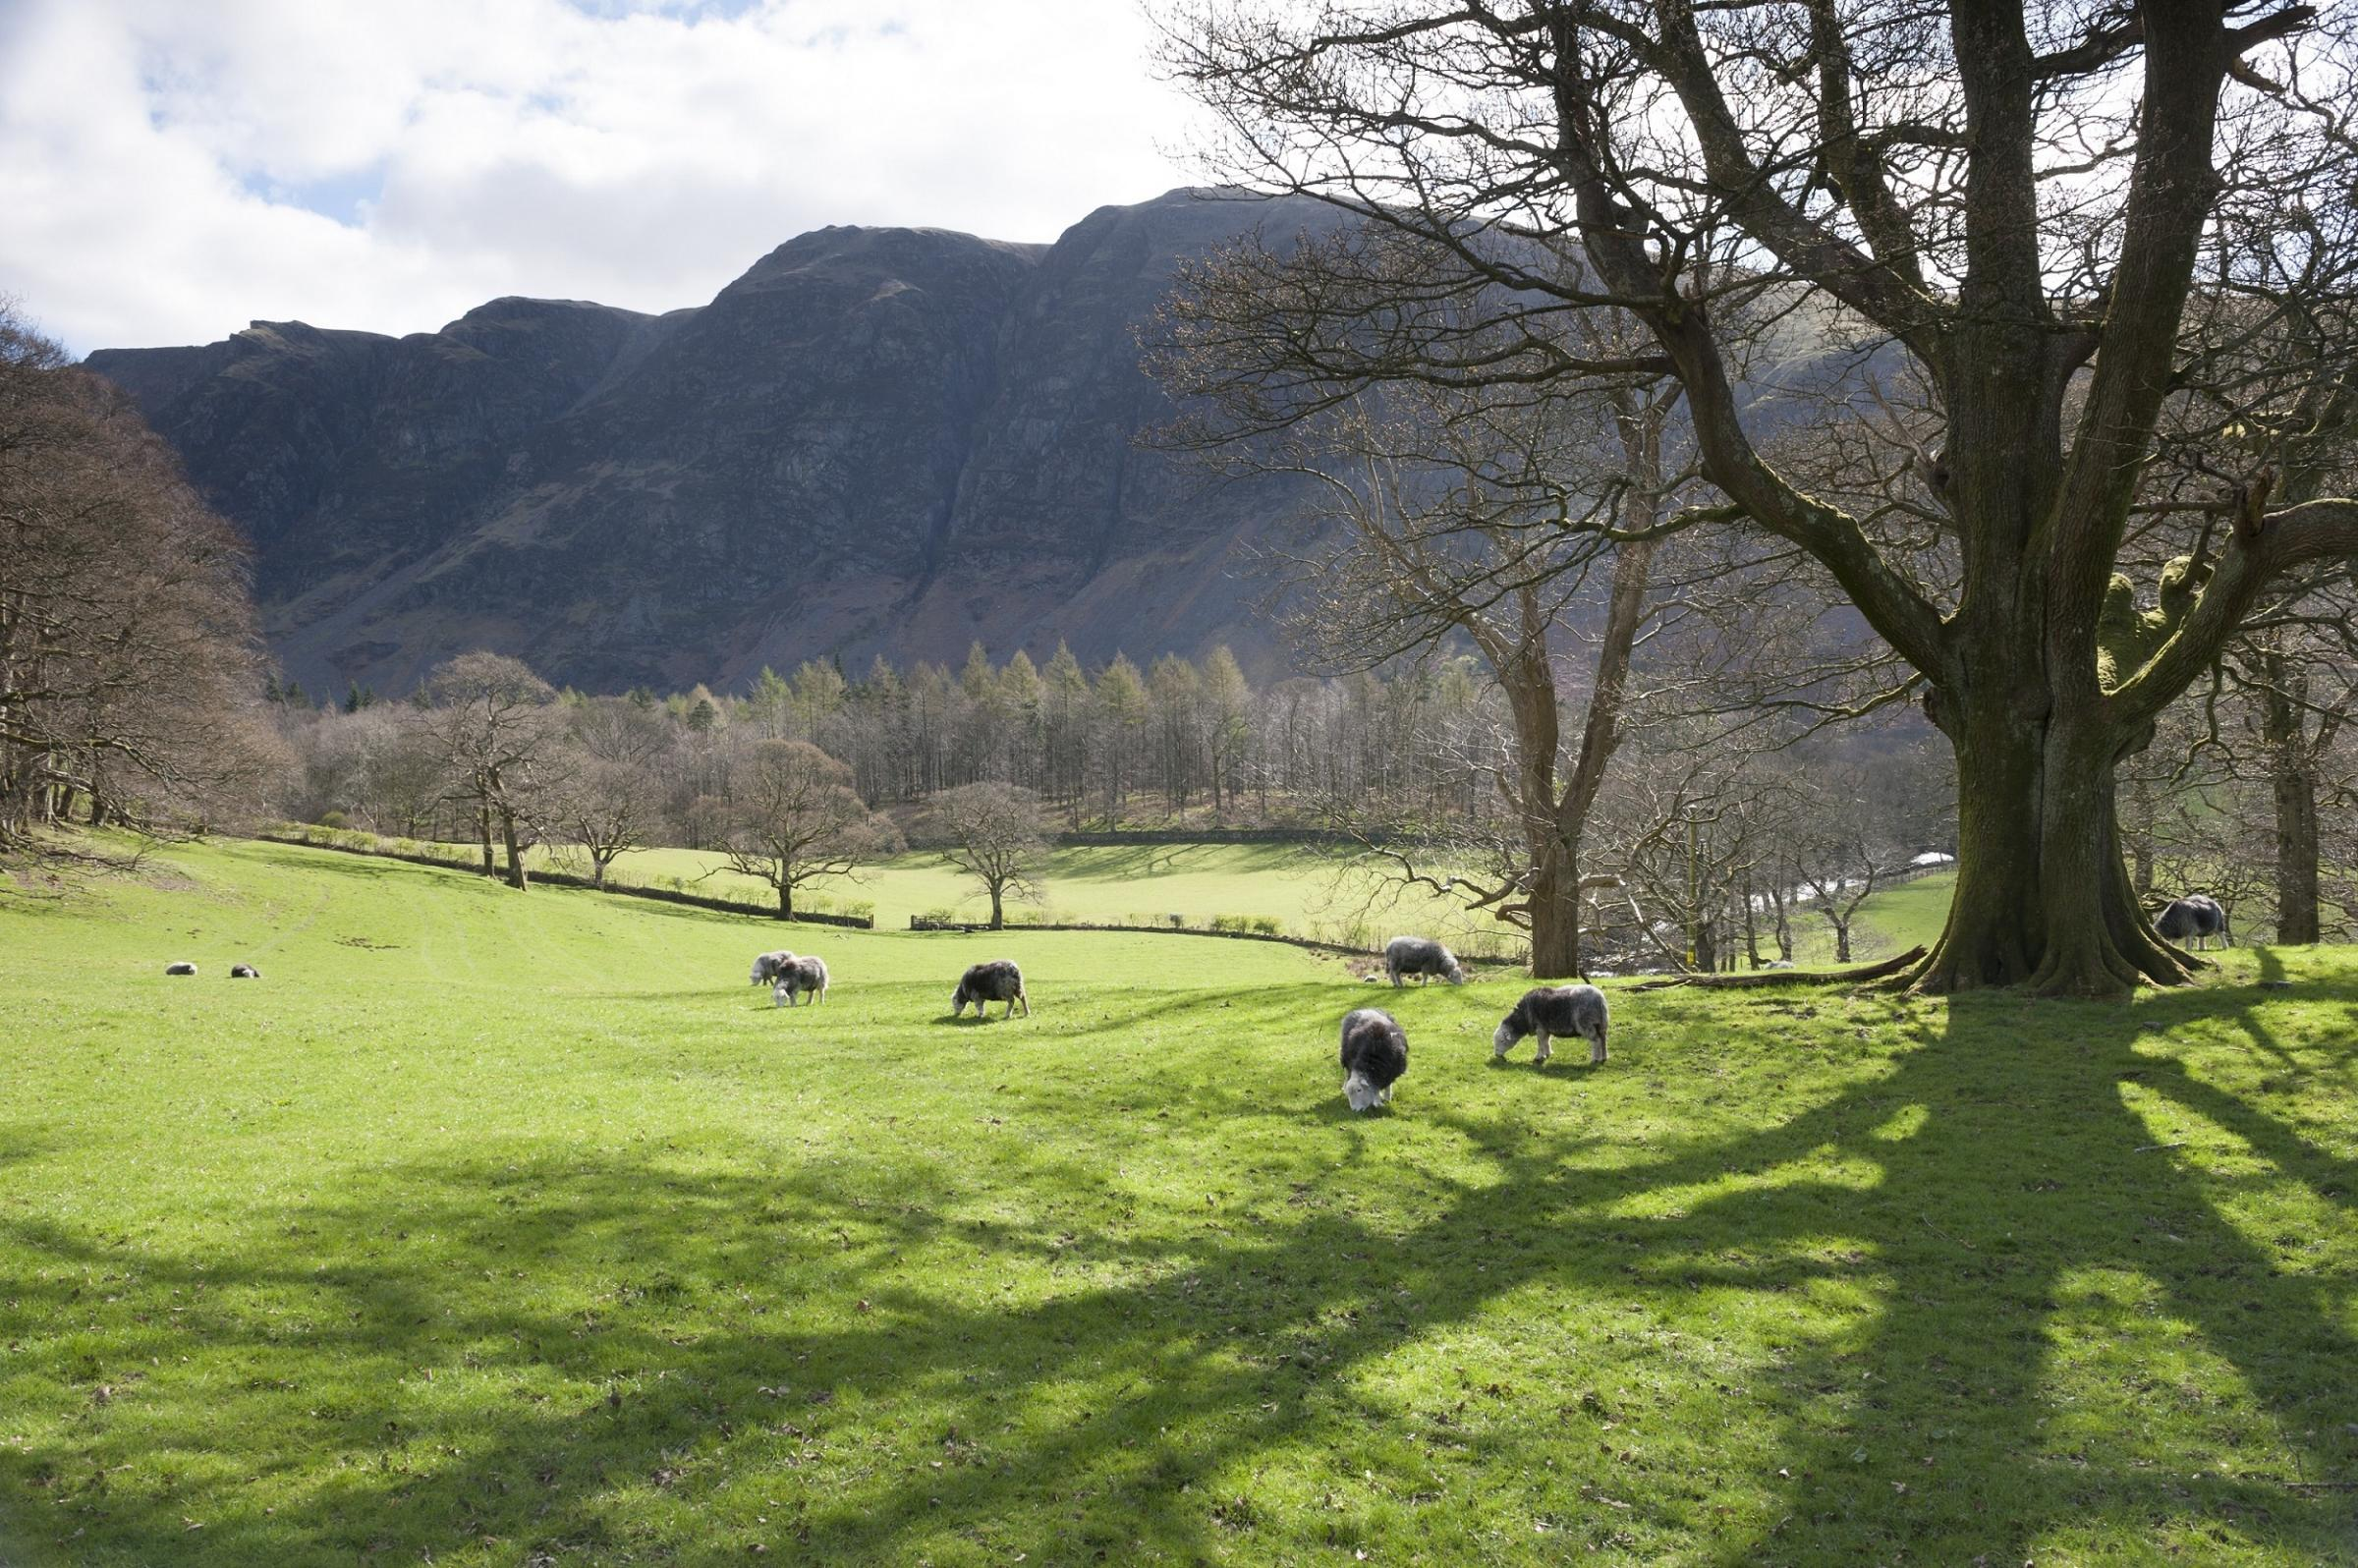 Herdwick sheep at Wasdale, Cumbria.